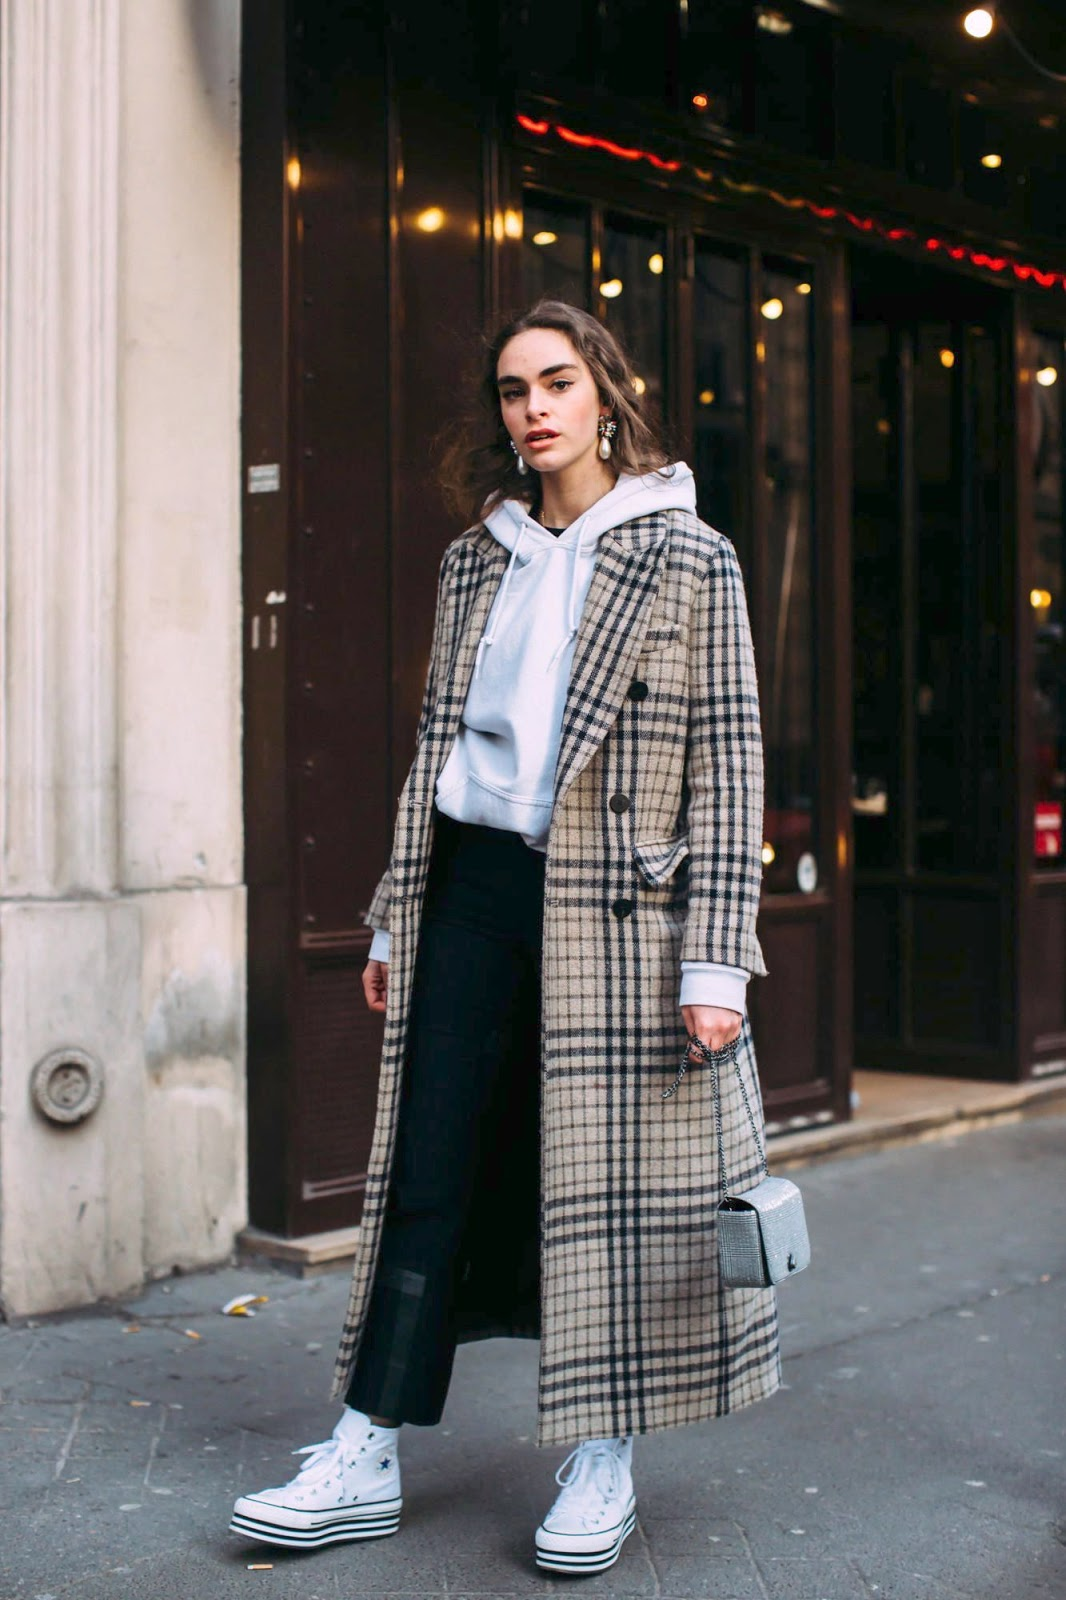 The Cool-Girl Way to Wear a Hoodie This Winter — Checked Plaid Coat, Black Pants, and Converse Sneakers